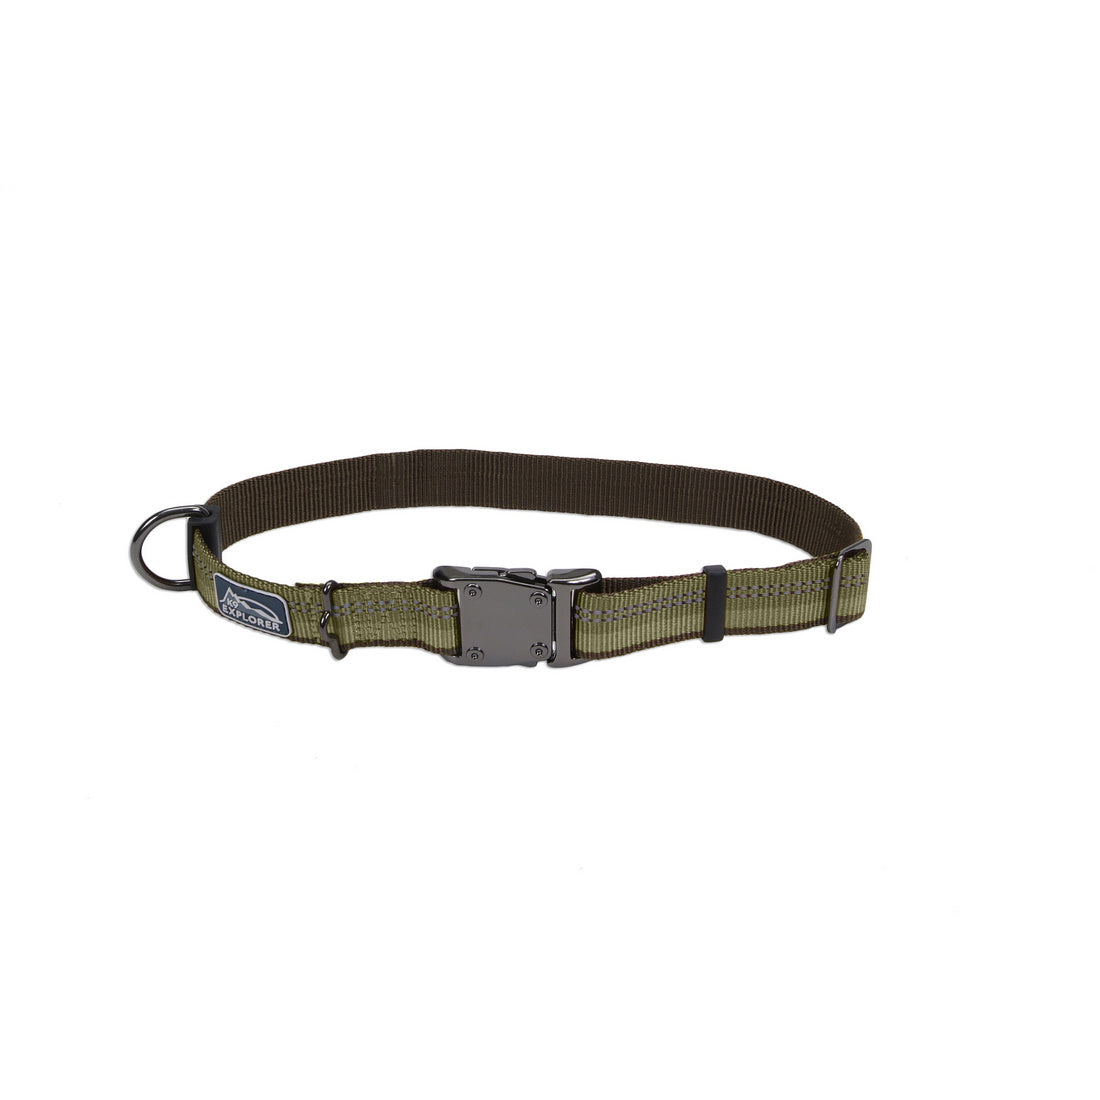 "Coastal K9 Explorer Reflective Collar 18"" - 1"" Fern"